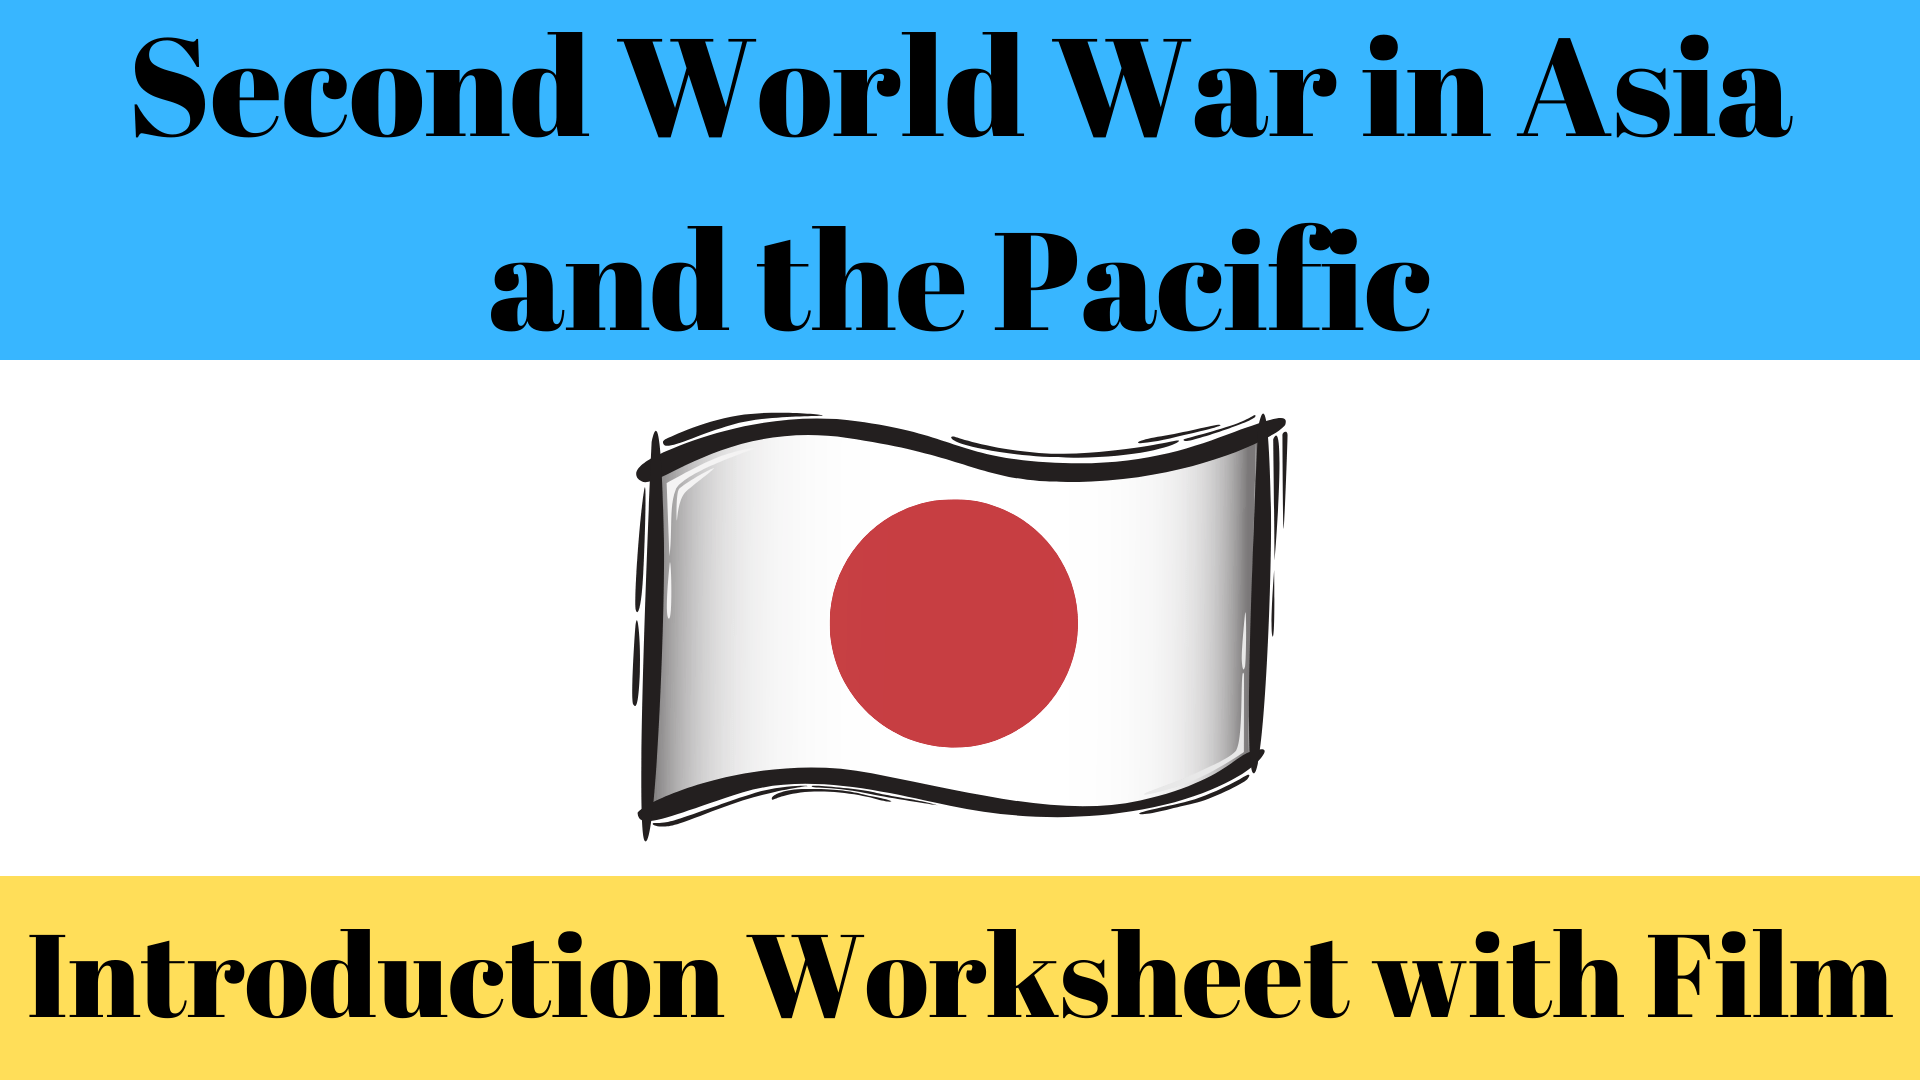 Introduction To The Second World War In The Pacific Region